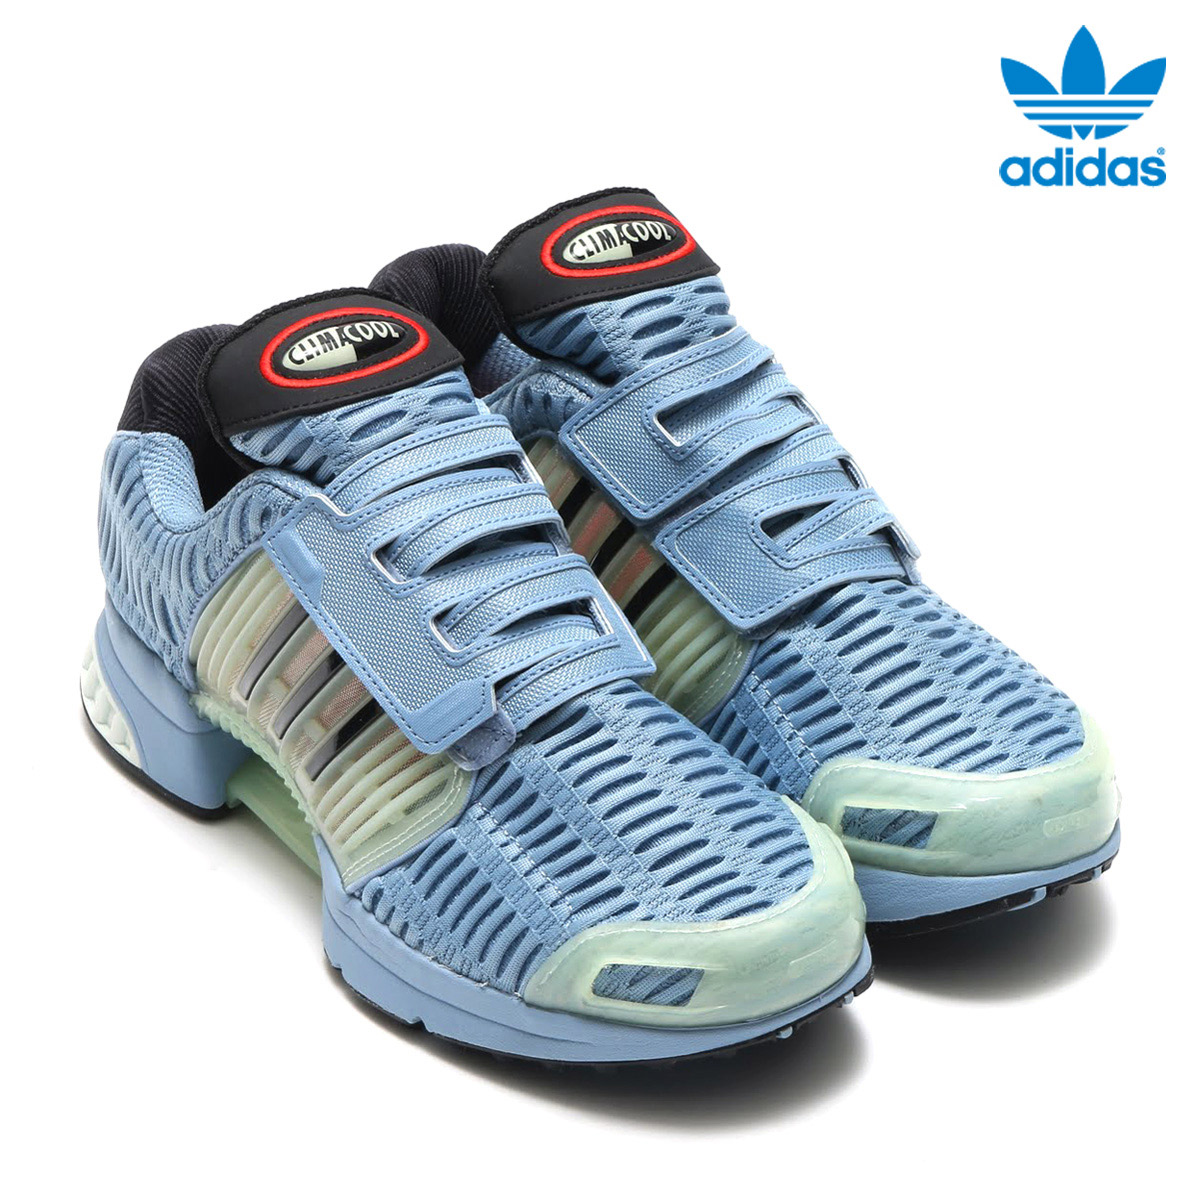 adidas Originals CLIMACOOL 1 CMF (アディダスオリジナルスクライマクール) (Tactile BlueCore Blacklinen Blue) 17SS I